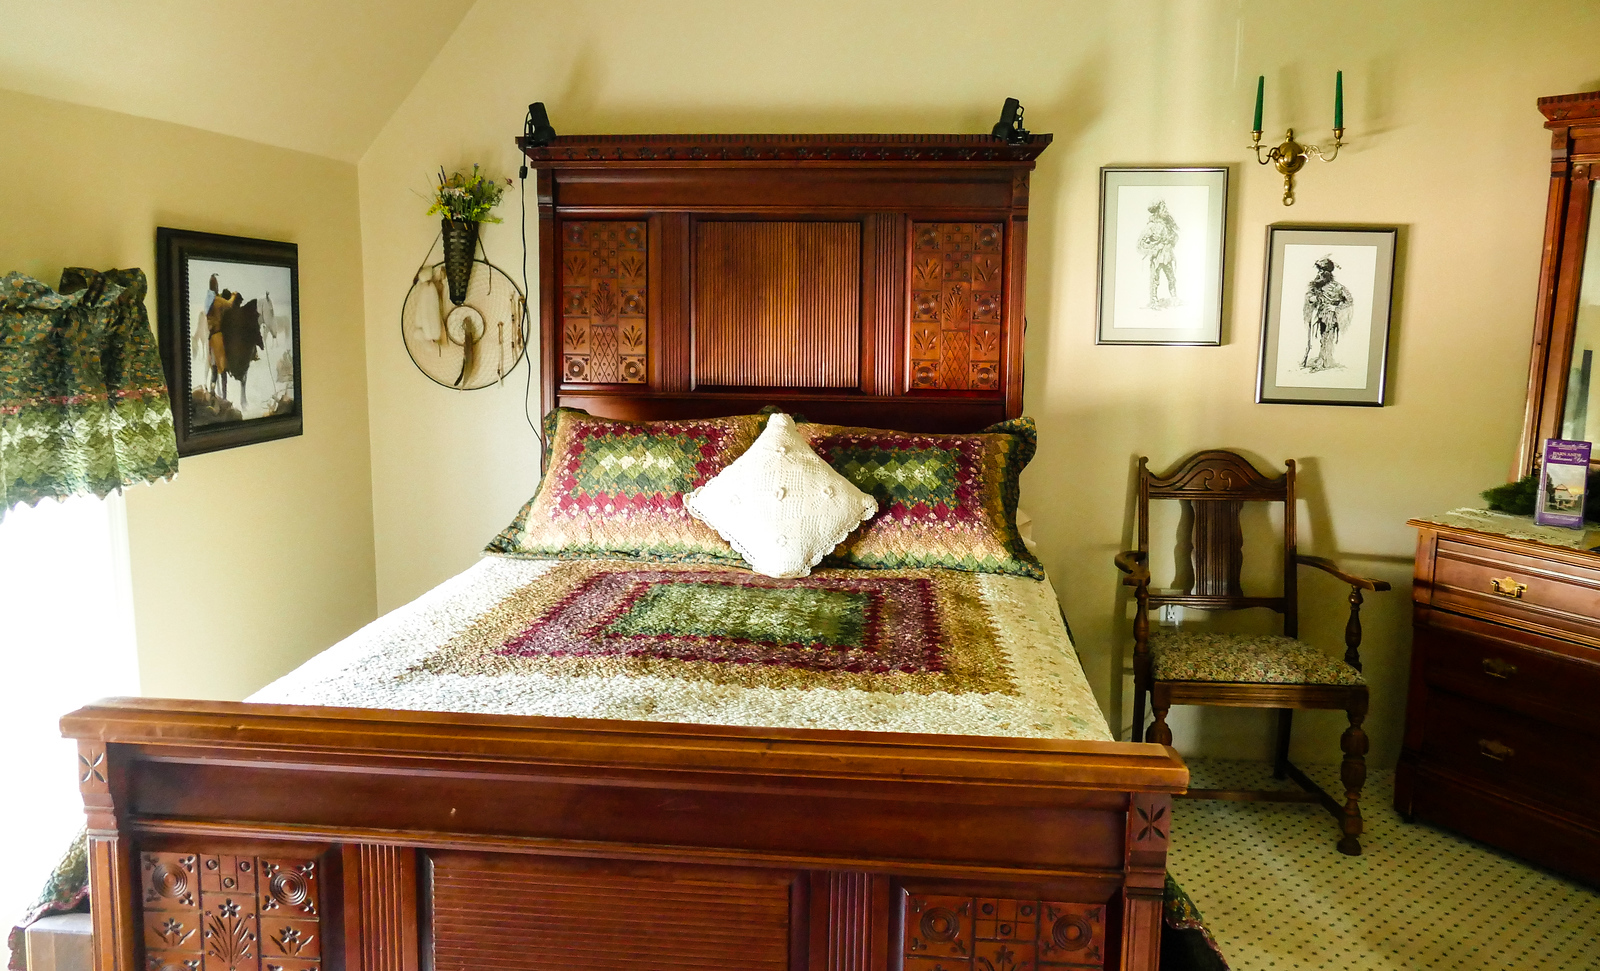 Bed with heavy wood headboard and footboard in a bed and breakfast in Nebraska.